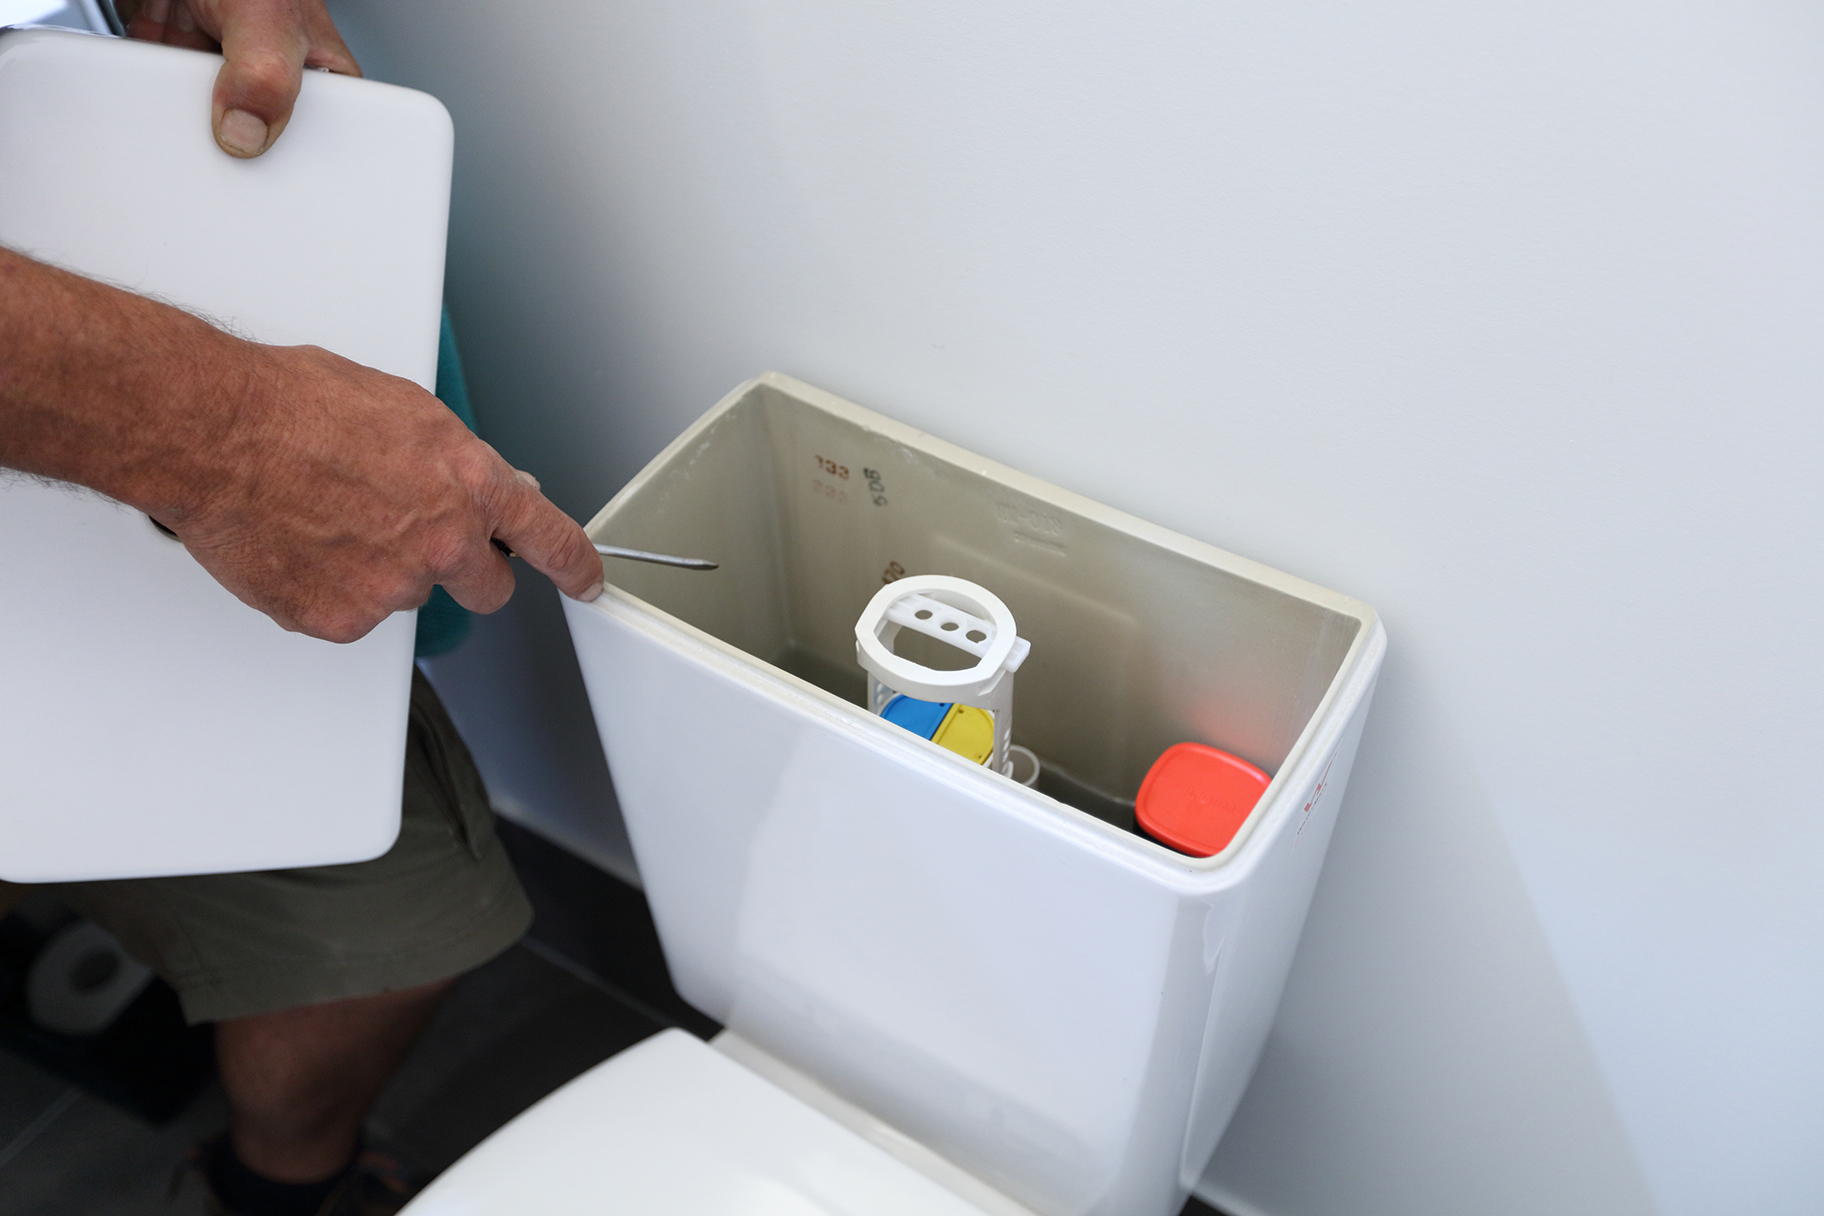 Plumber checking toilet cistern